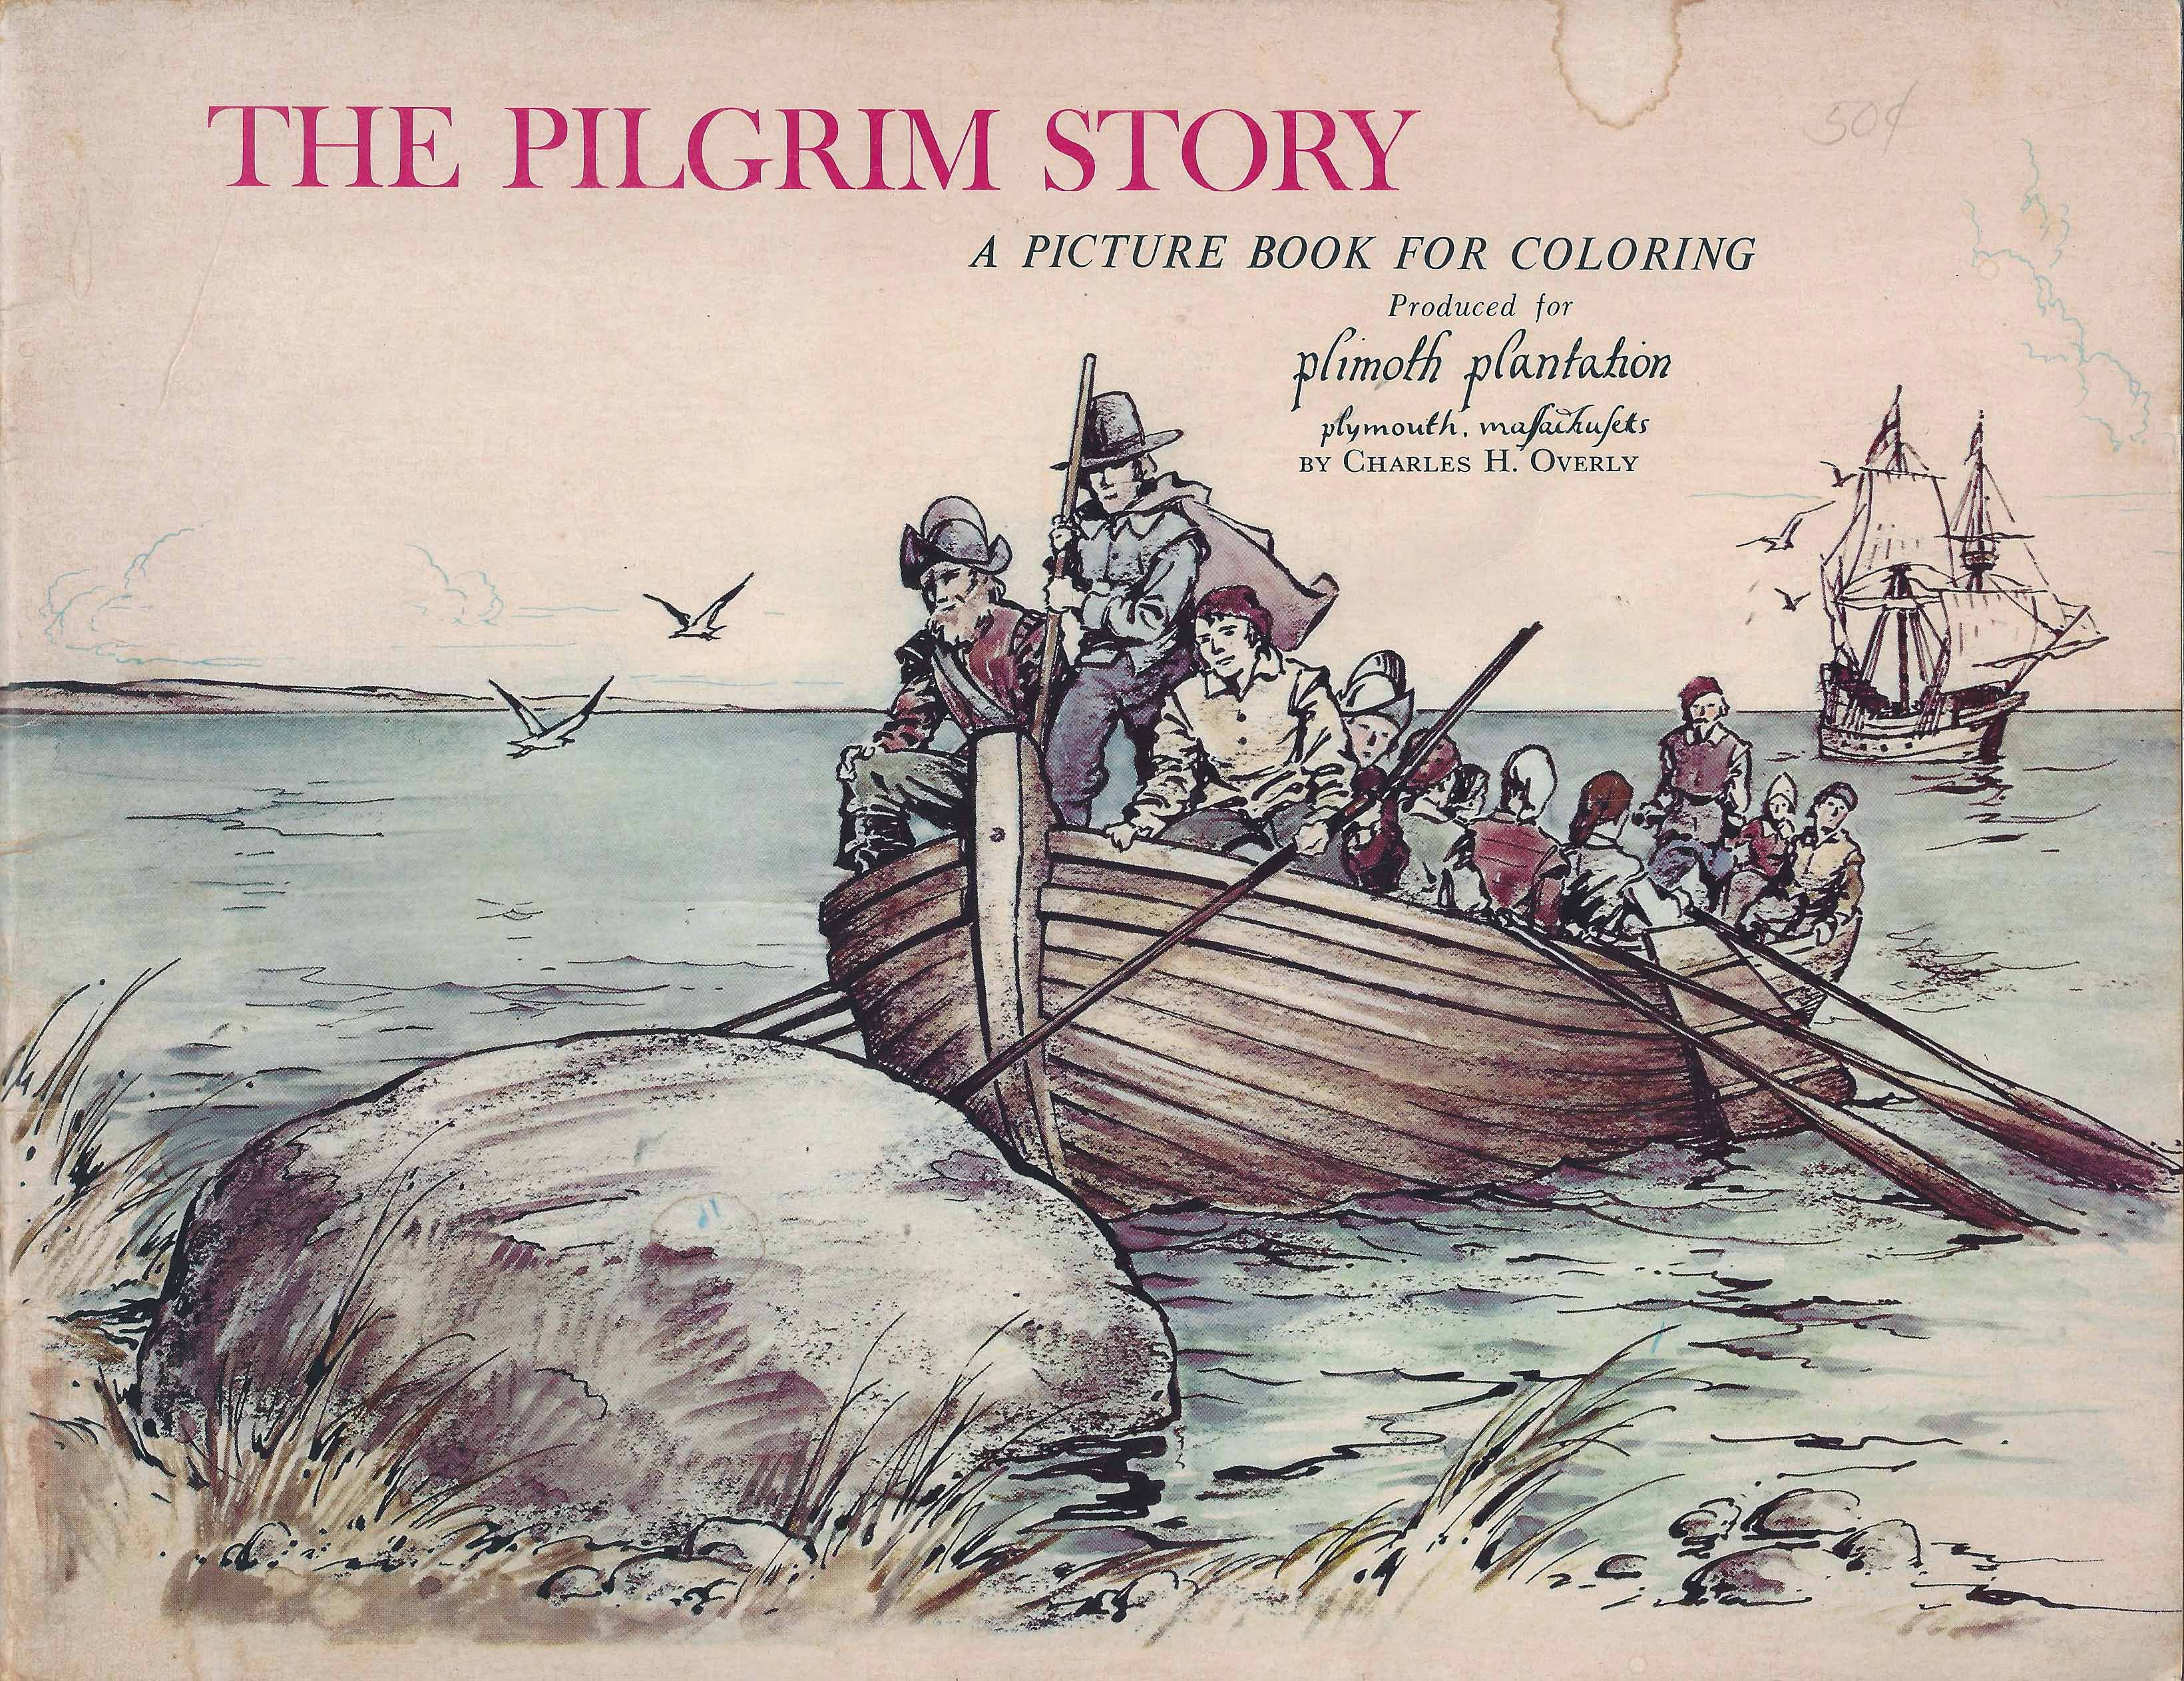 a vintage childrens book illuminates a visit to plymouth plantation  in the th century there were no spelling rules and so you will find  different spellings of the same words in texts from that time often within  the same